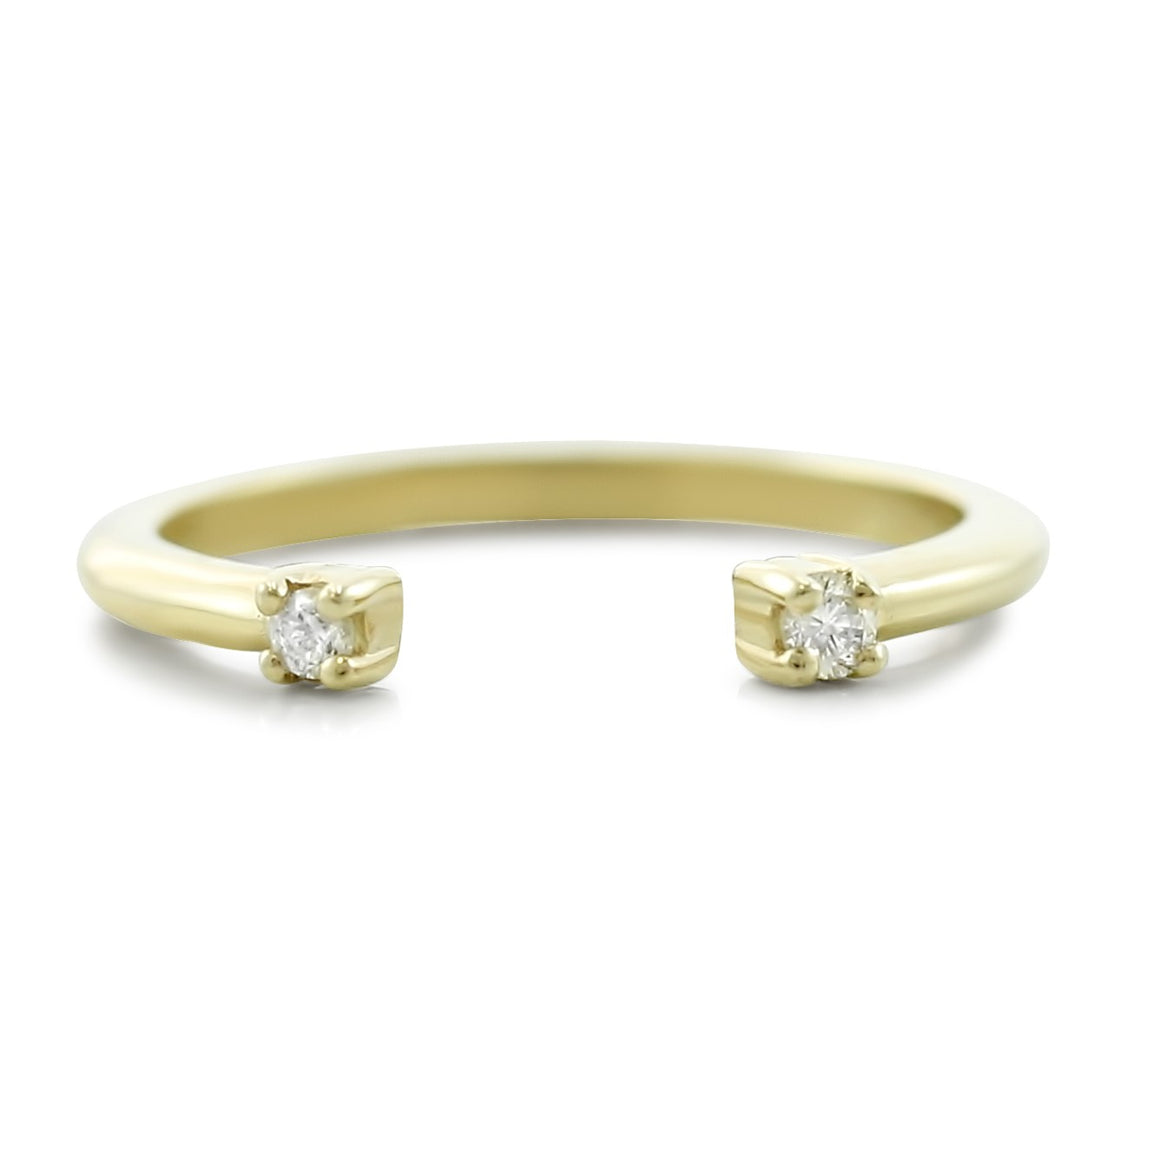 14k yellow gold open wedding band with white diamonds